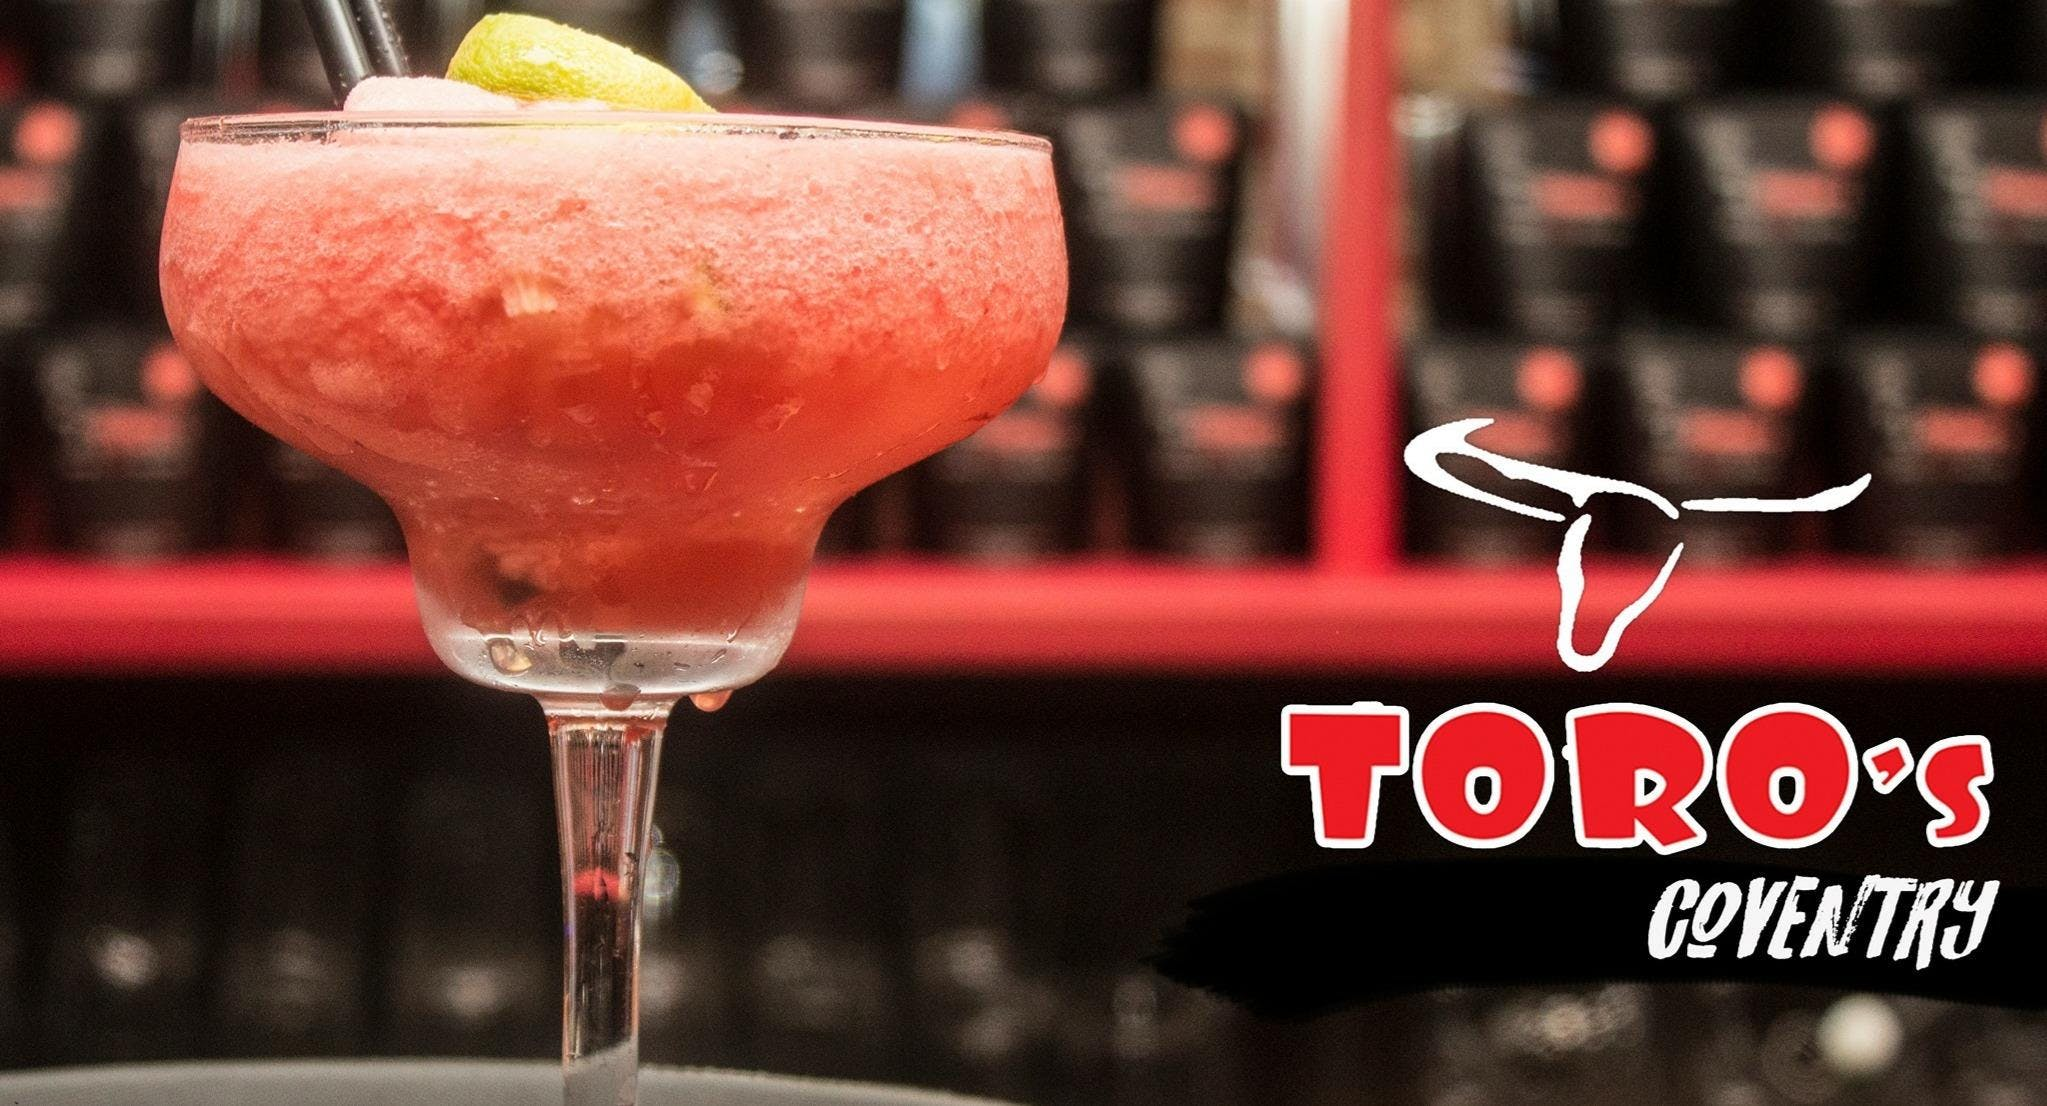 Toro's Steakhouse - Coventry